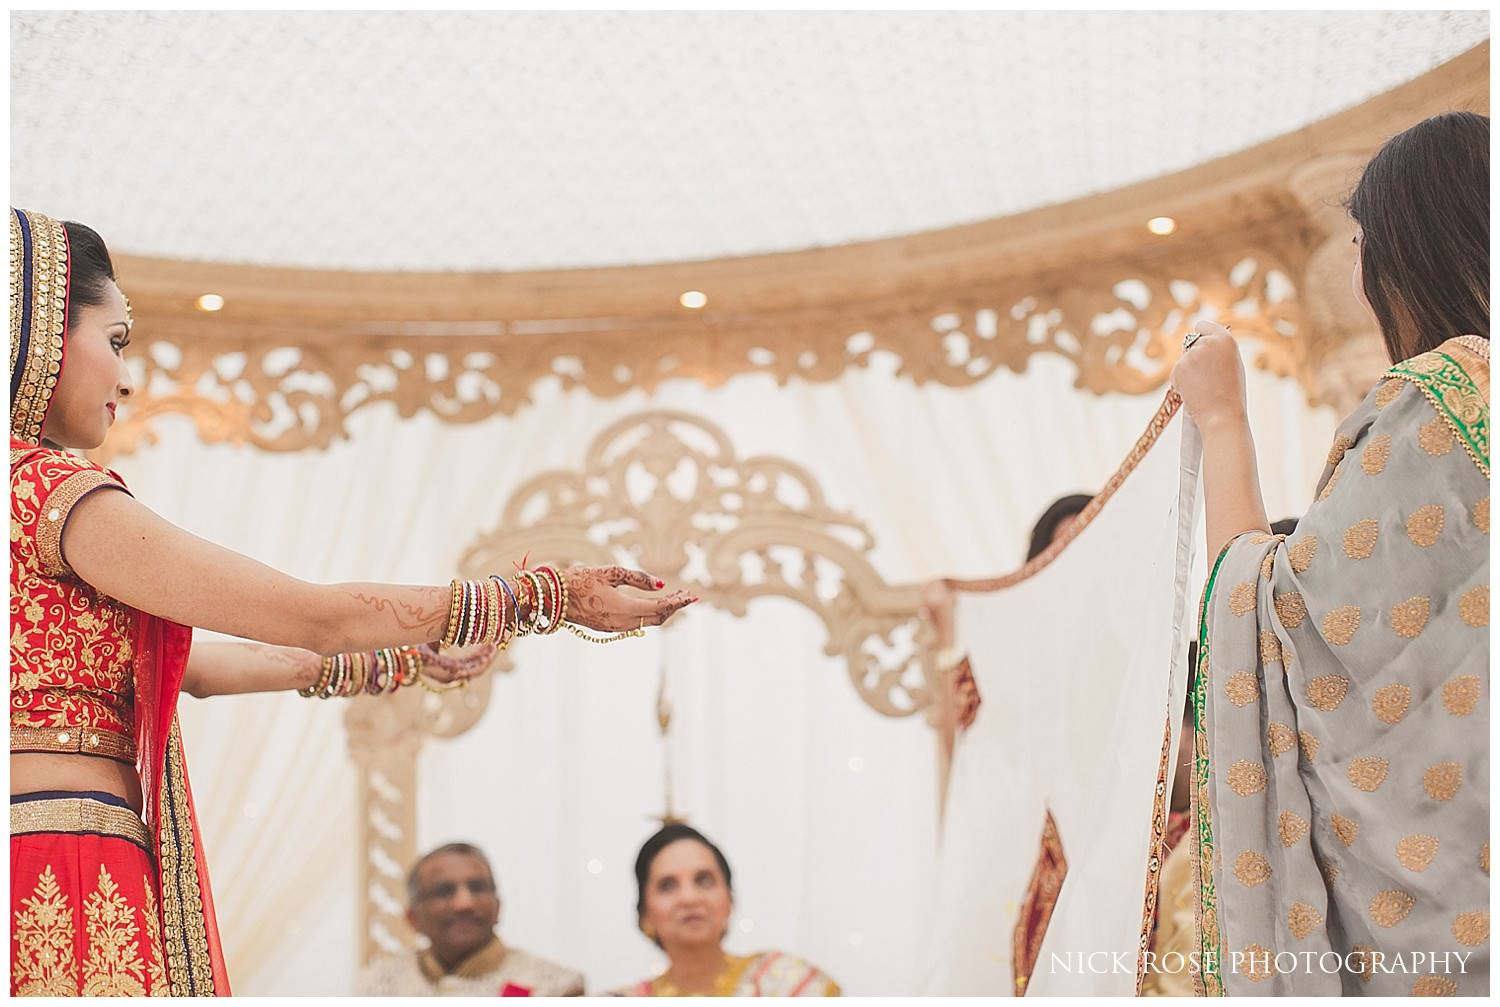 Bride ceremony reveal at East Wintergarden during a Hindu wedding in Canary Wharf London